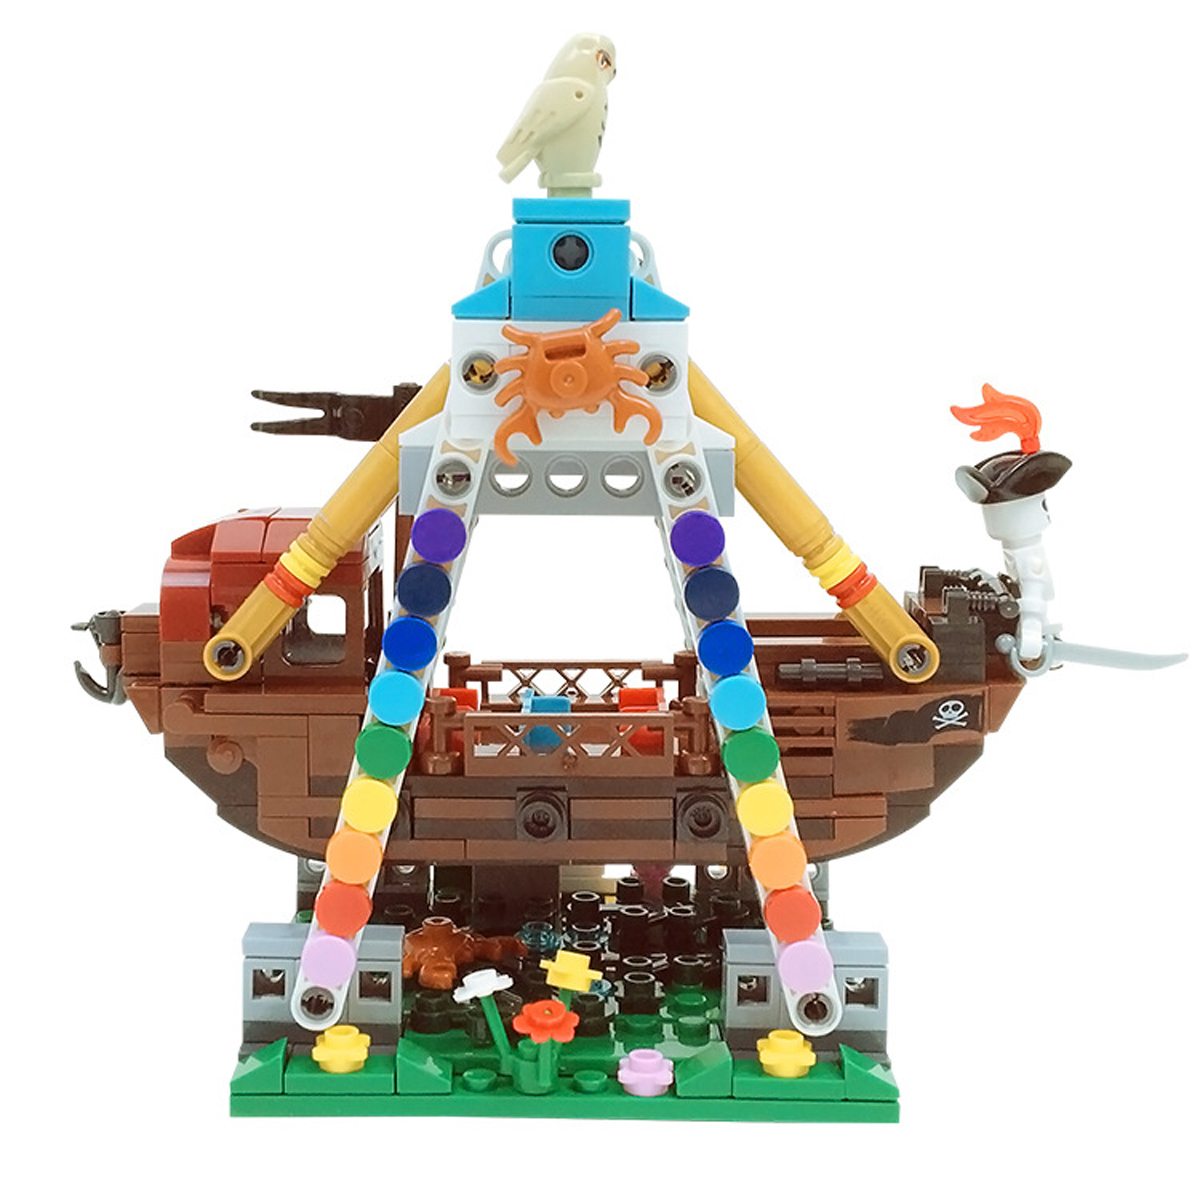 Genuine 520pcs Colorful World Series The Pirate Ship Set Building Blocks Bricks Educational Toys Mod